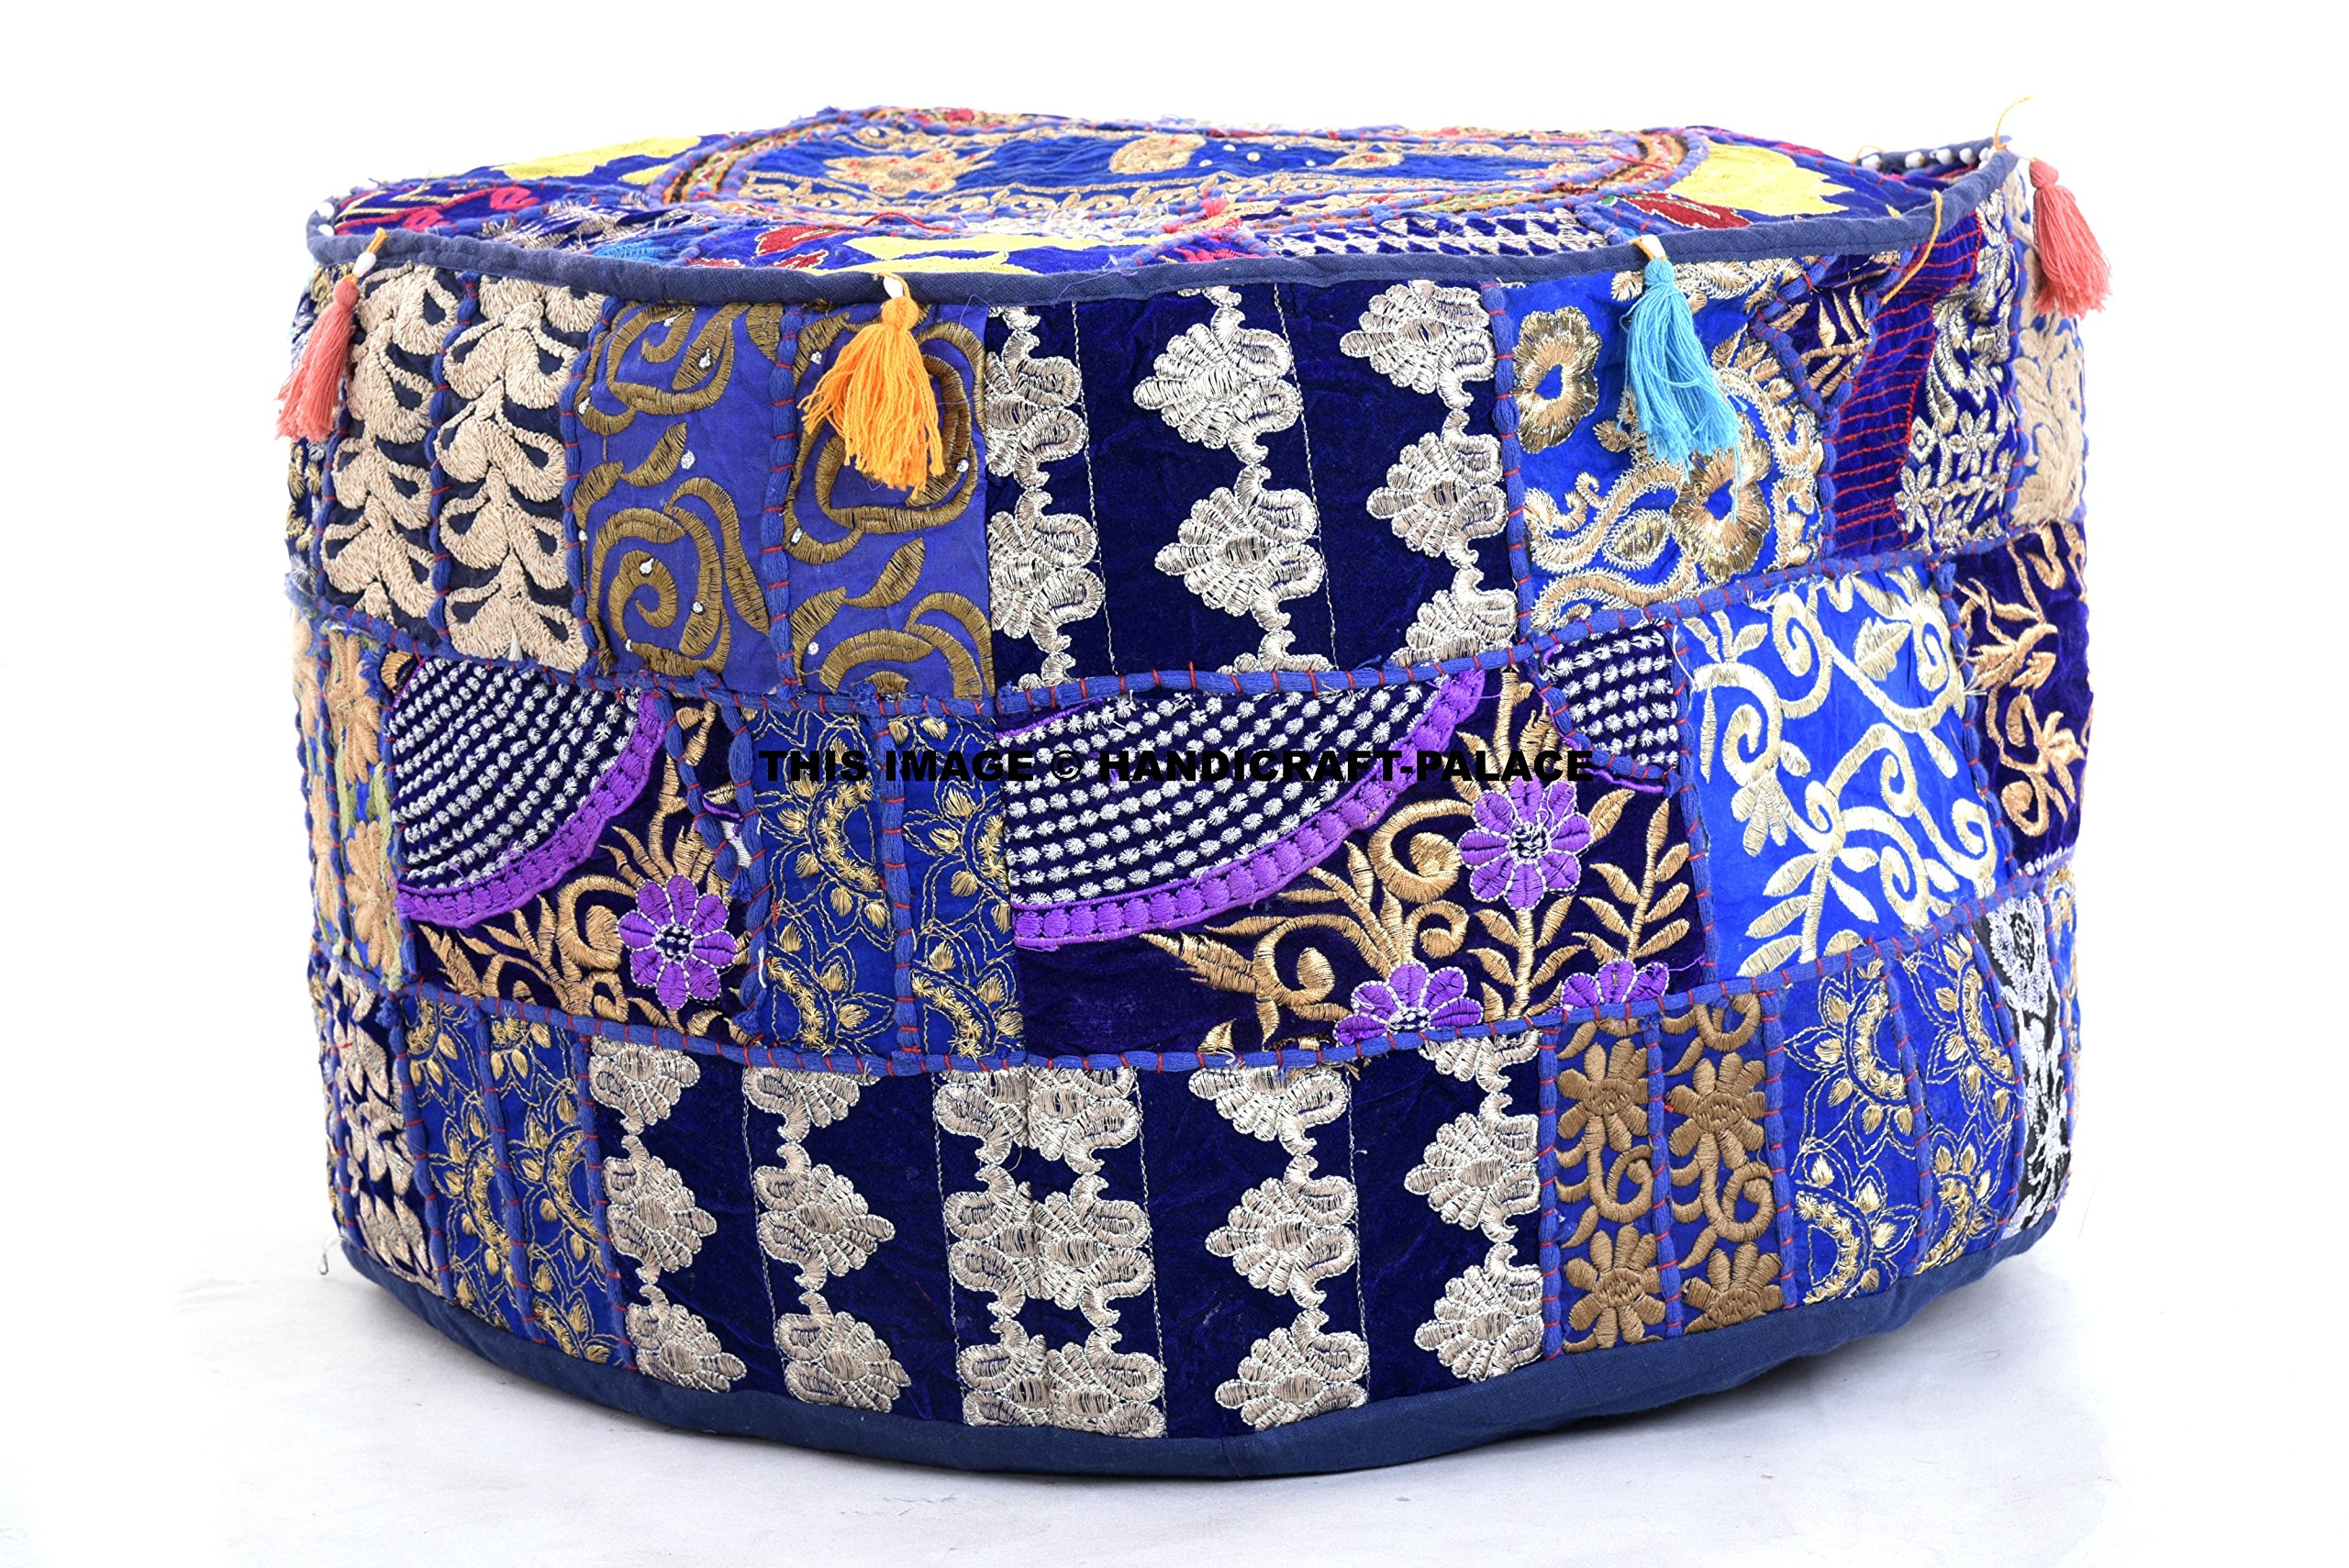 Indian Vintage Patchwork Ottoman Pouf , Indian Living Room Pouf, Foot Stool, Round Ottoman Cover Pouf, Floor Pillow Ottoman Poof,Traditional Indian Home Decor Cotton Cushion Ottoman Cover 14x22' by HANDICRAFT-PALACE